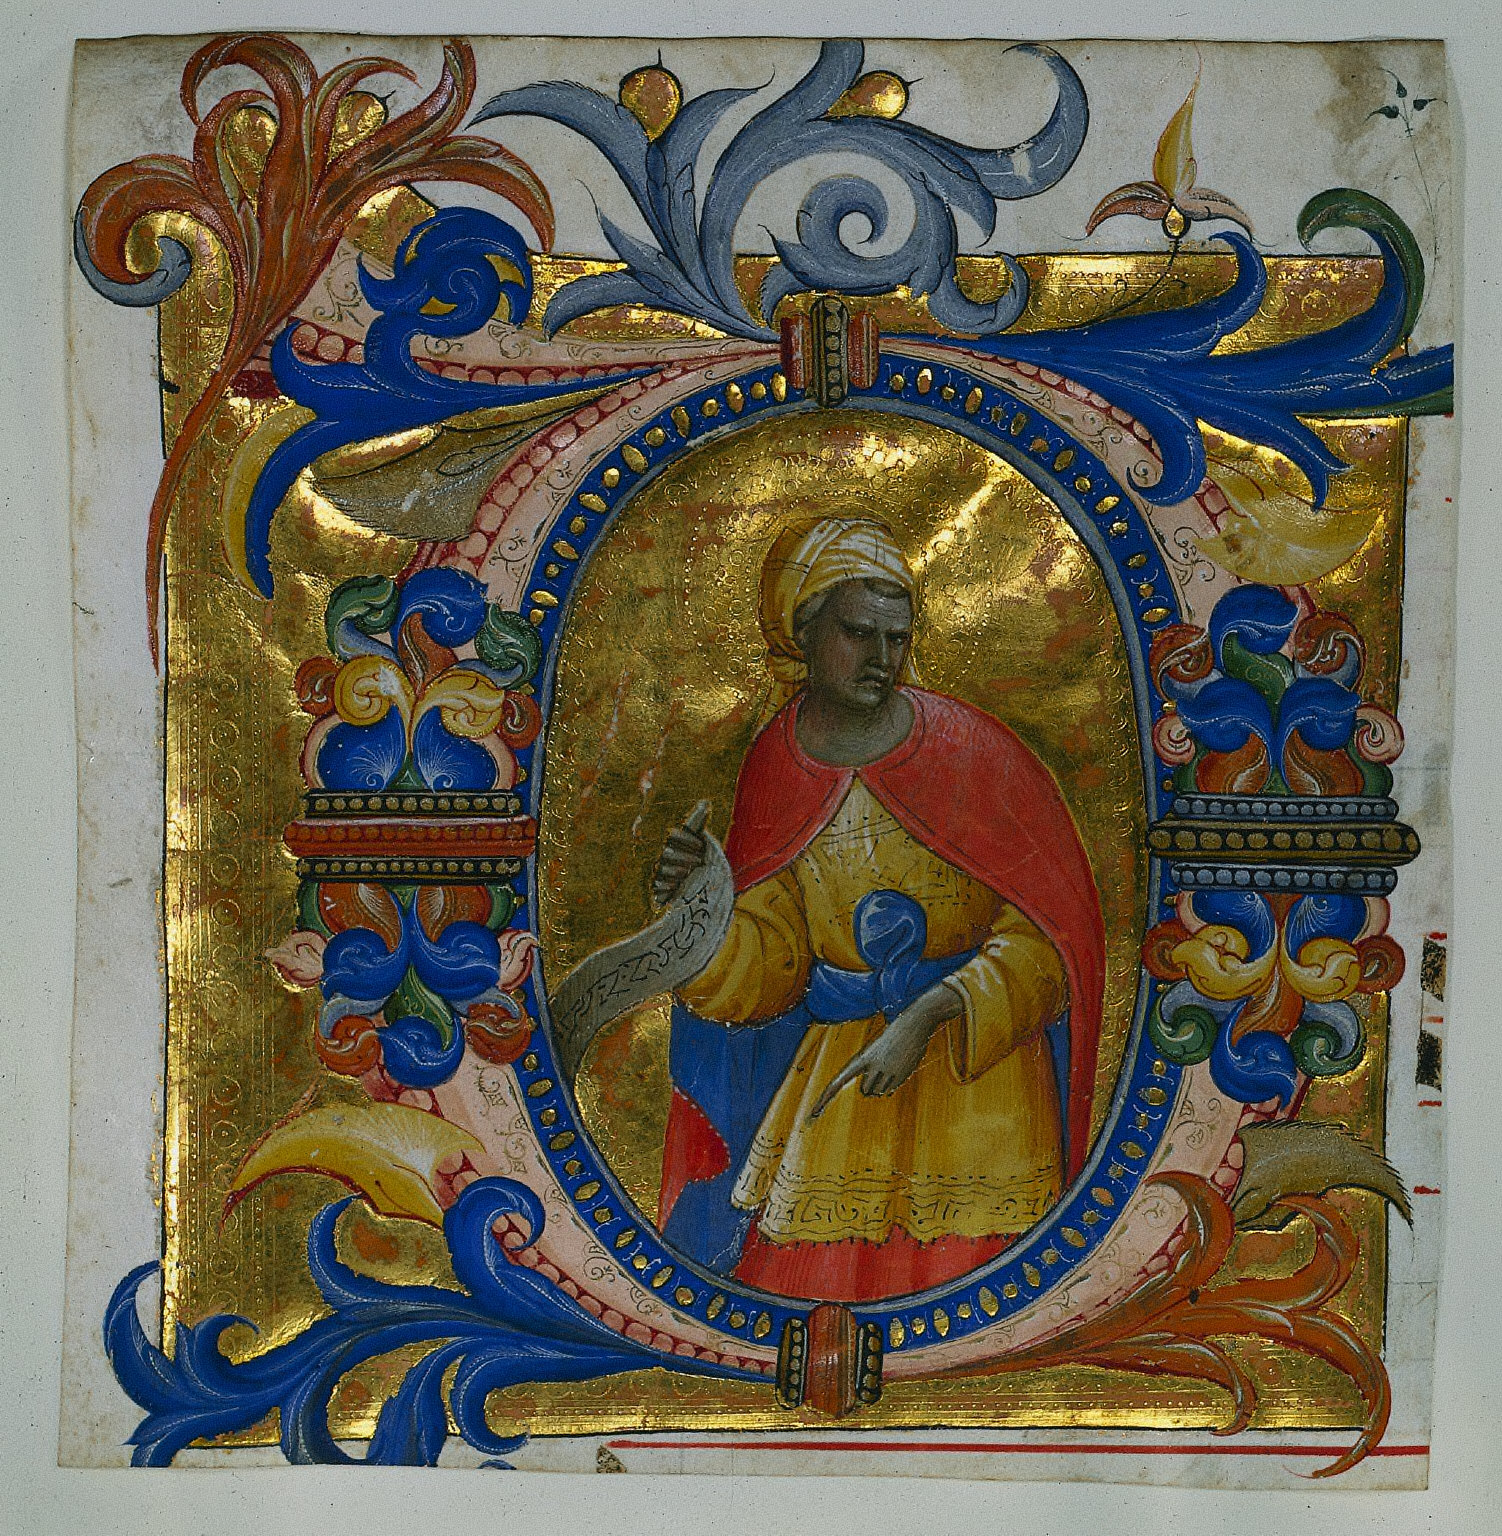 Historiated Initial (D) Excised from a Choir Book: A Prophet